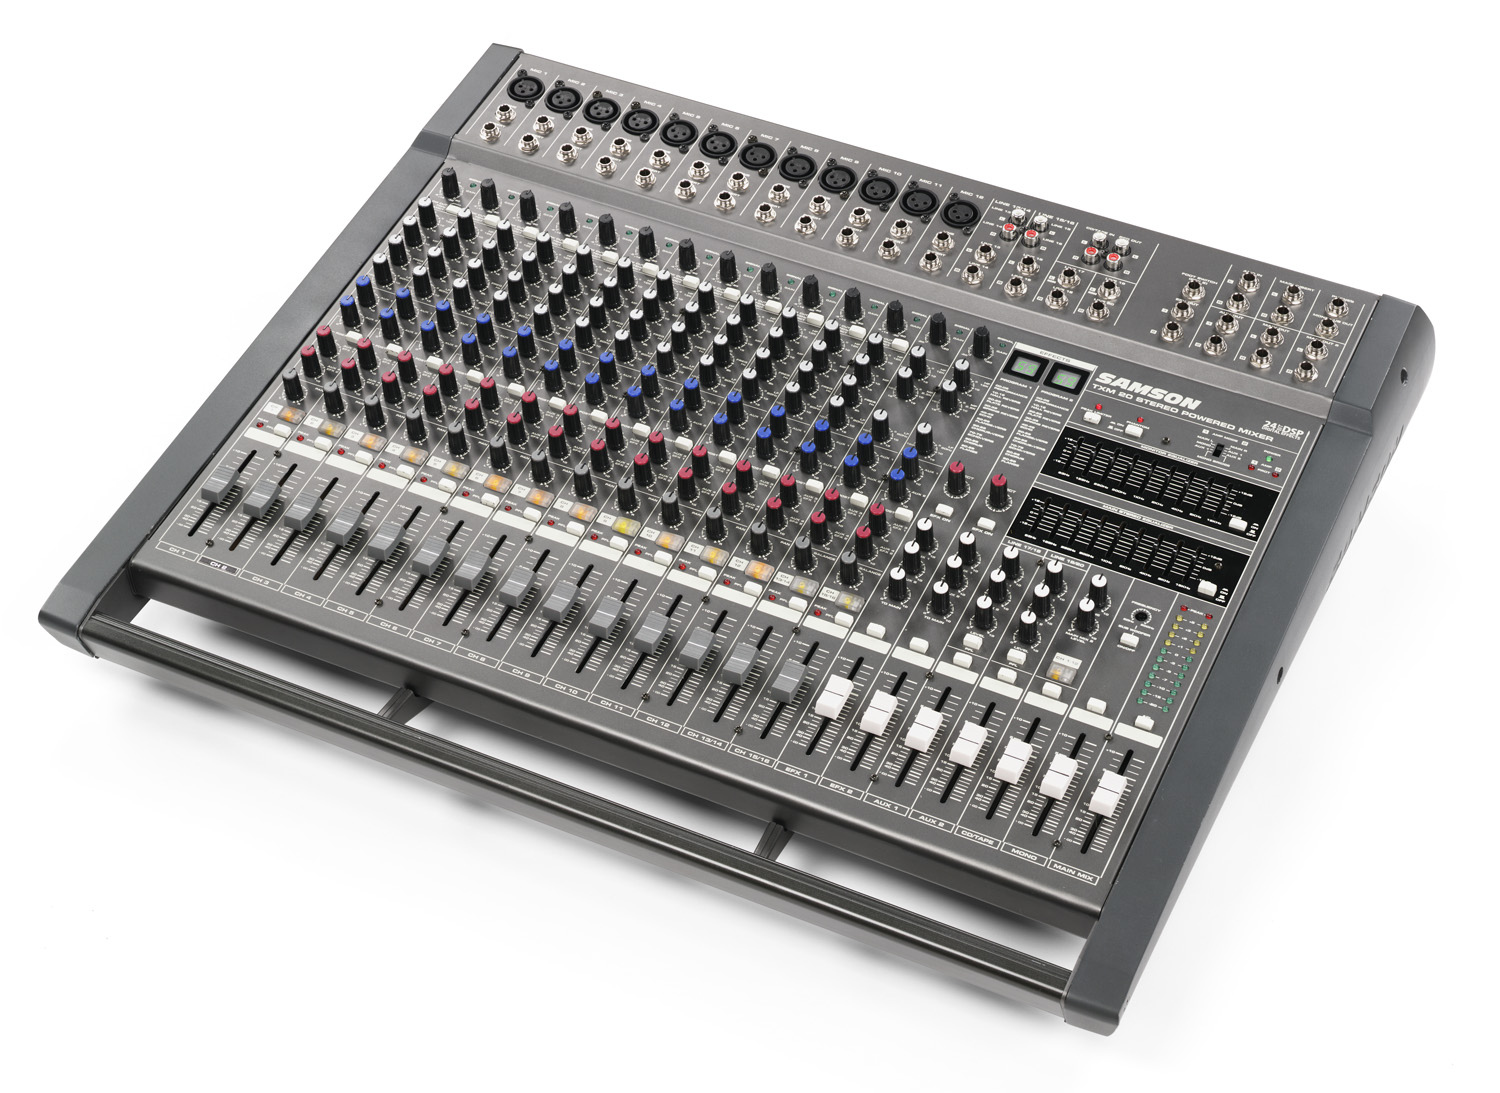 SAMSON TXM20 MIXER